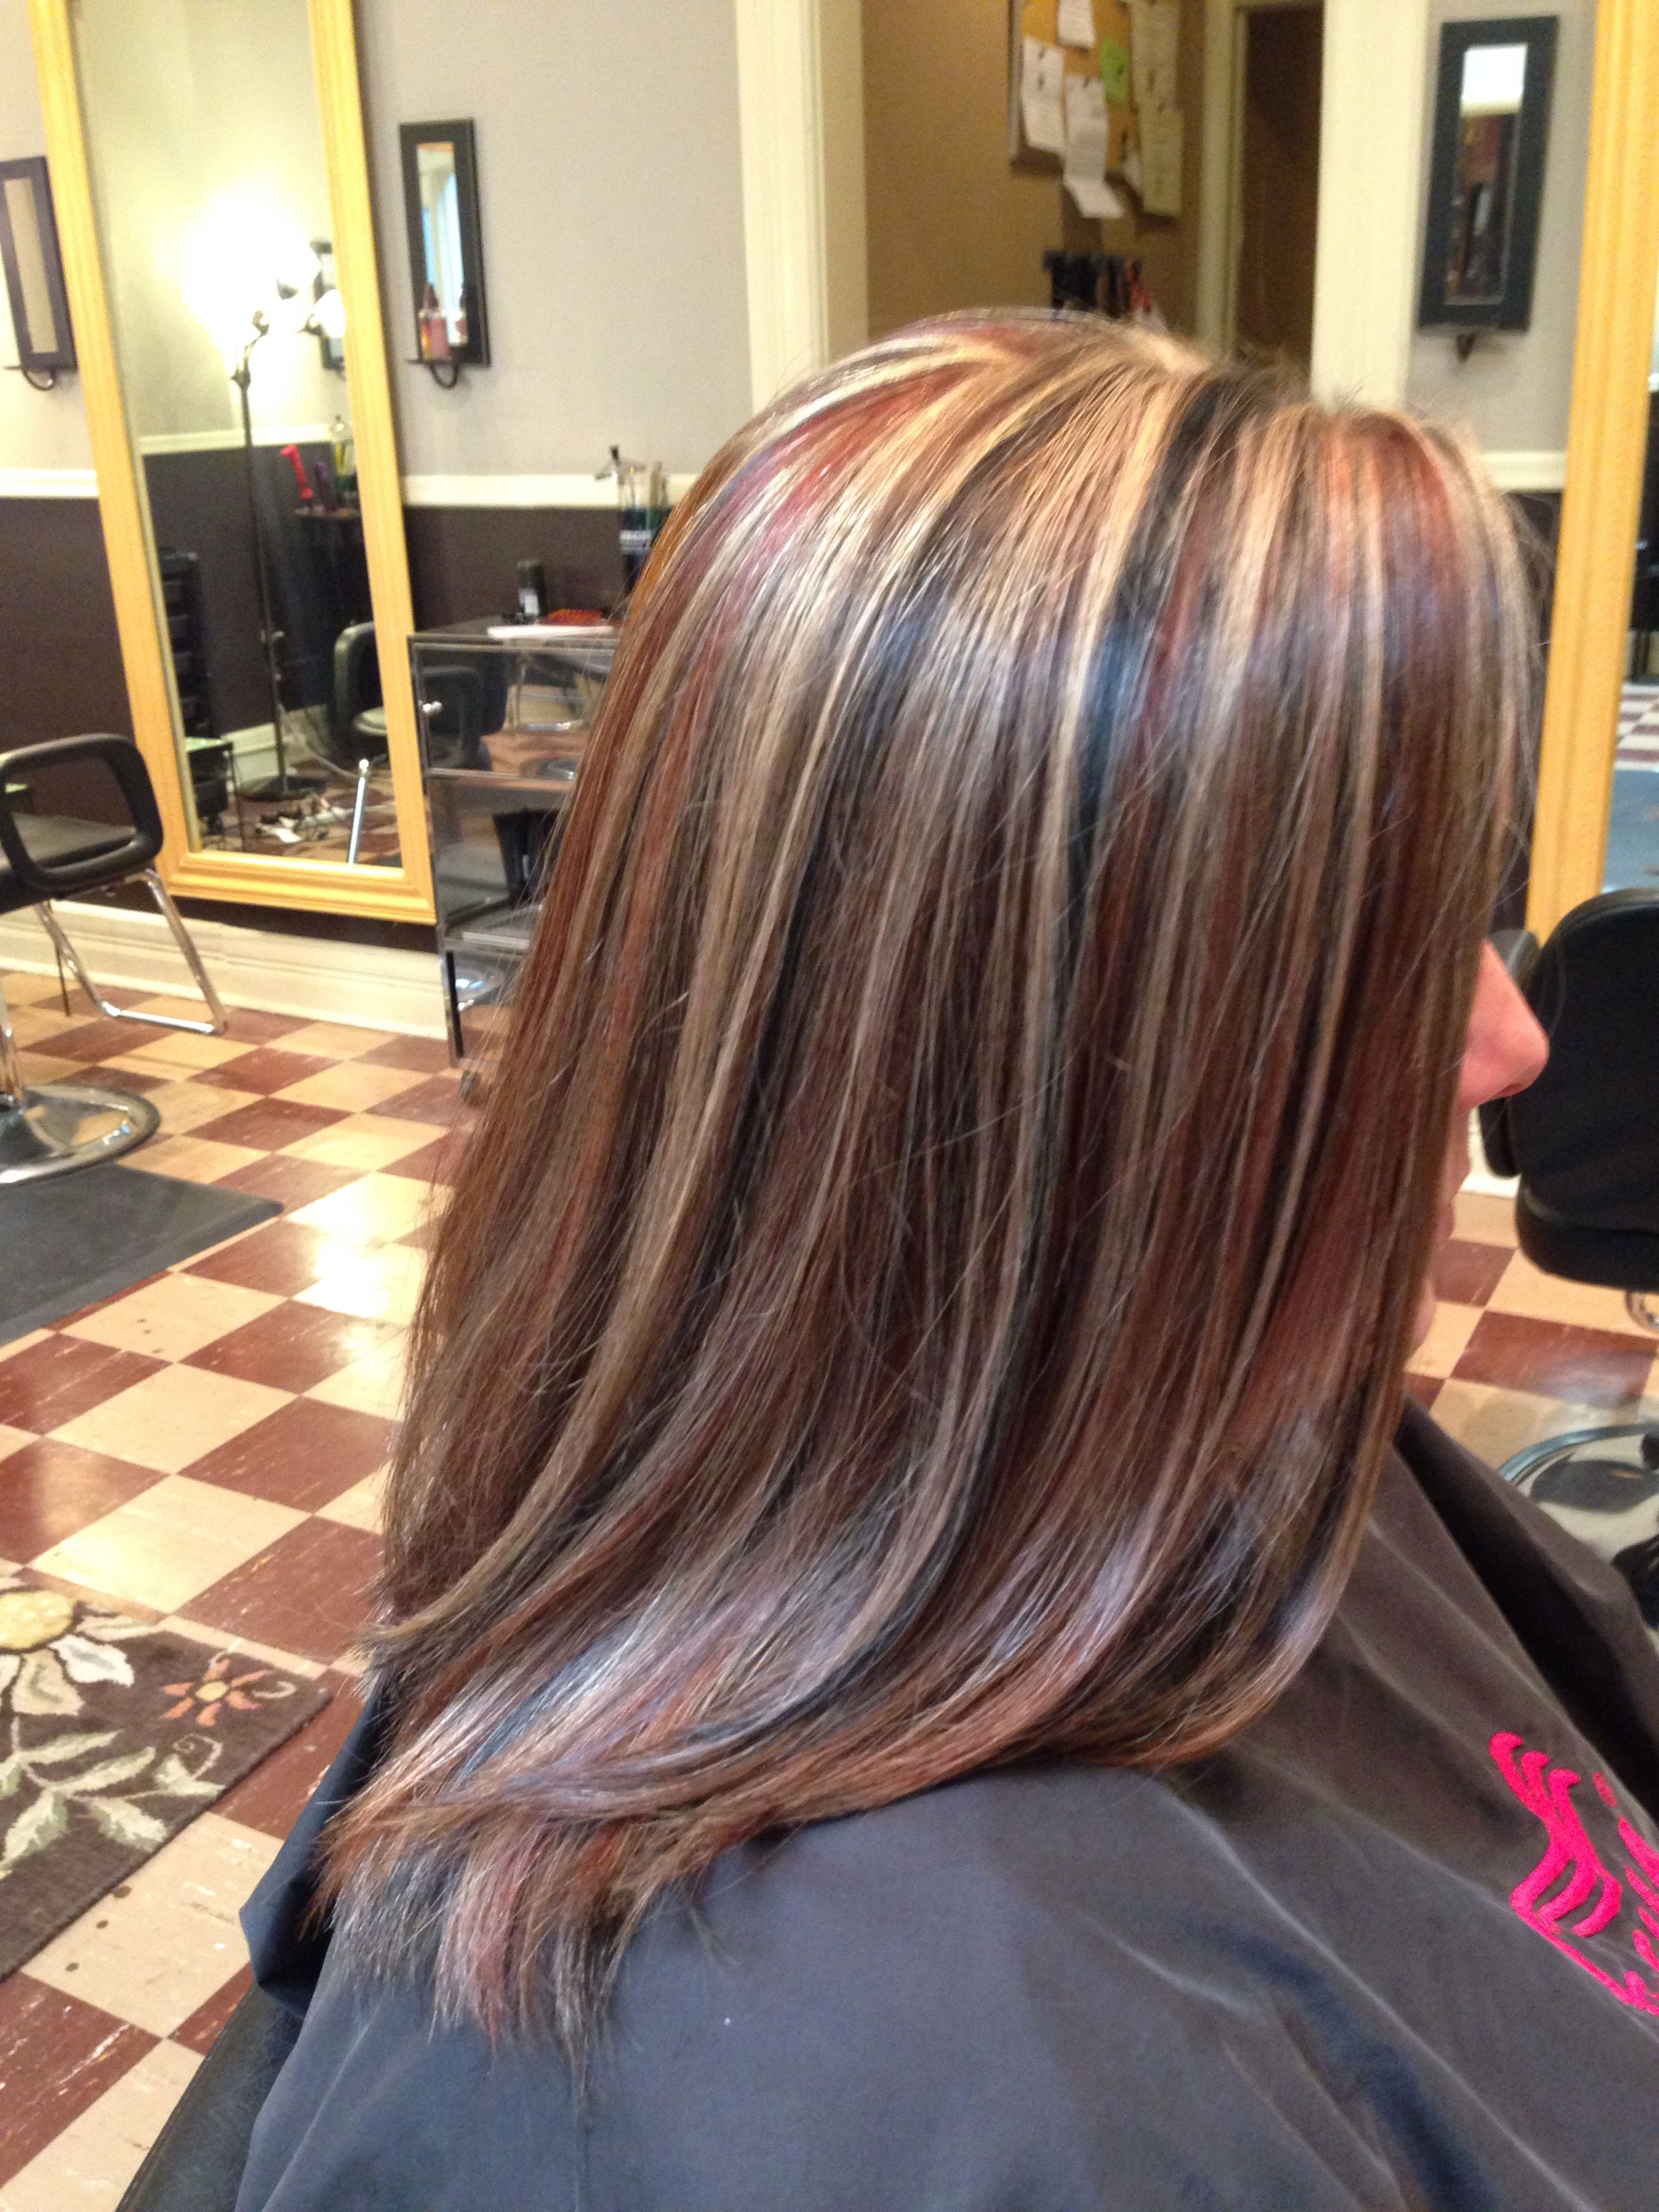 Highlight Lowlight Dimensional With Blonde Black And Red Inspired By Kelly Clarkson Hair Highlights Hair Hair Styles